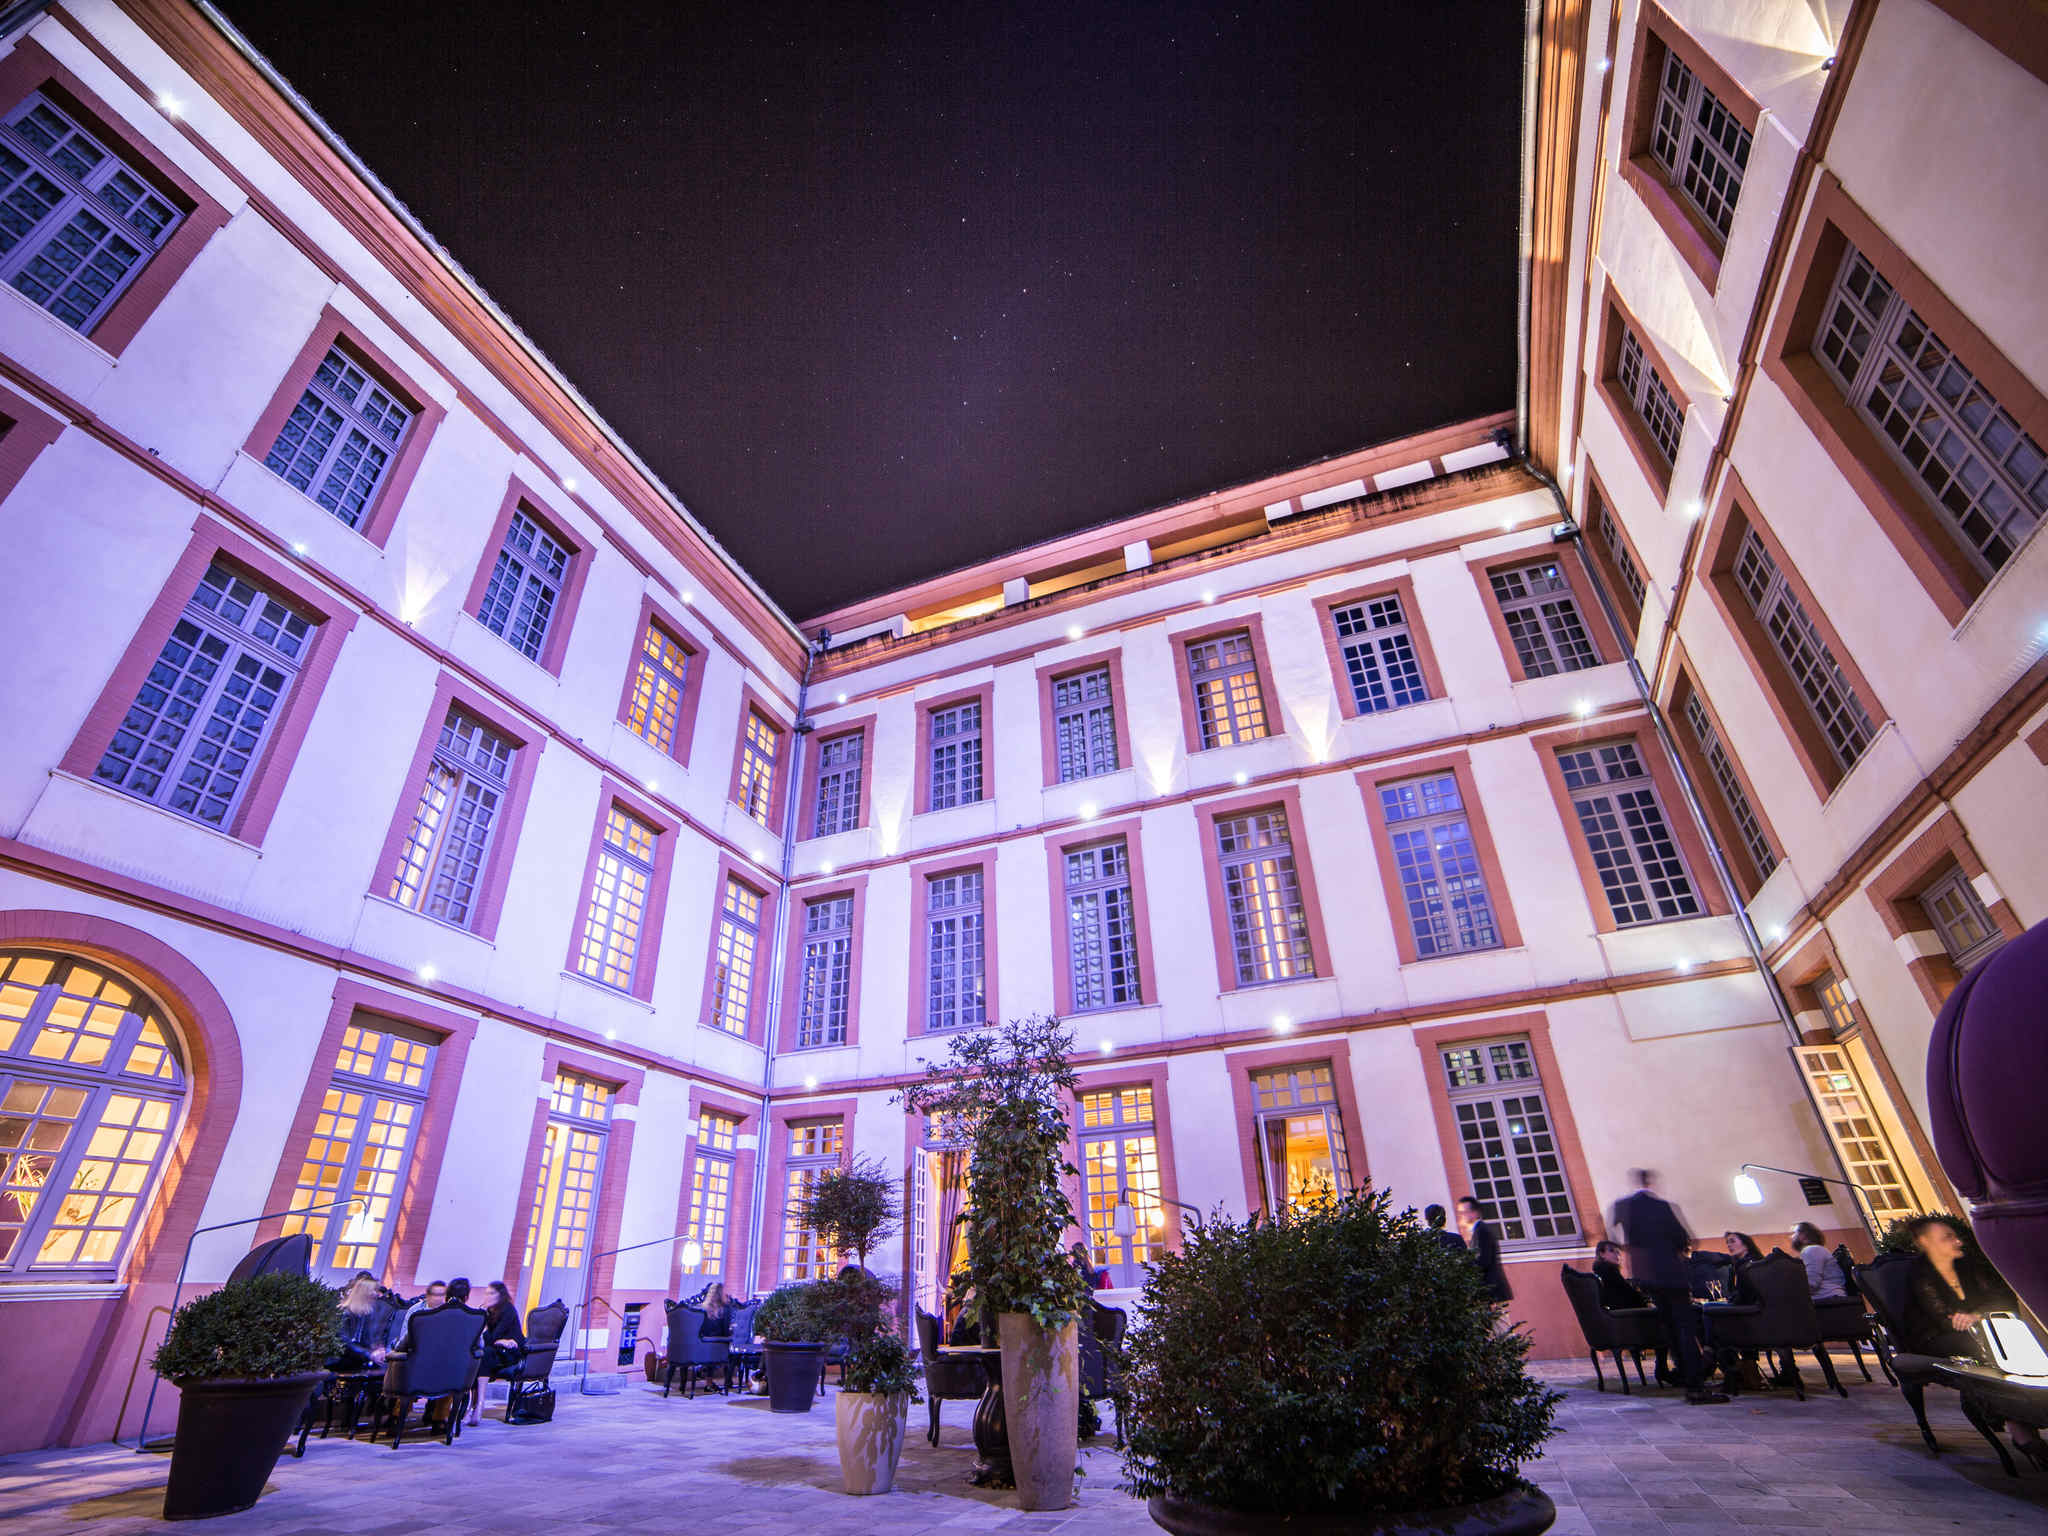 Hotel - La Cour des Consuls Hôtel & Spa Toulouse - MGallery by Sofitel